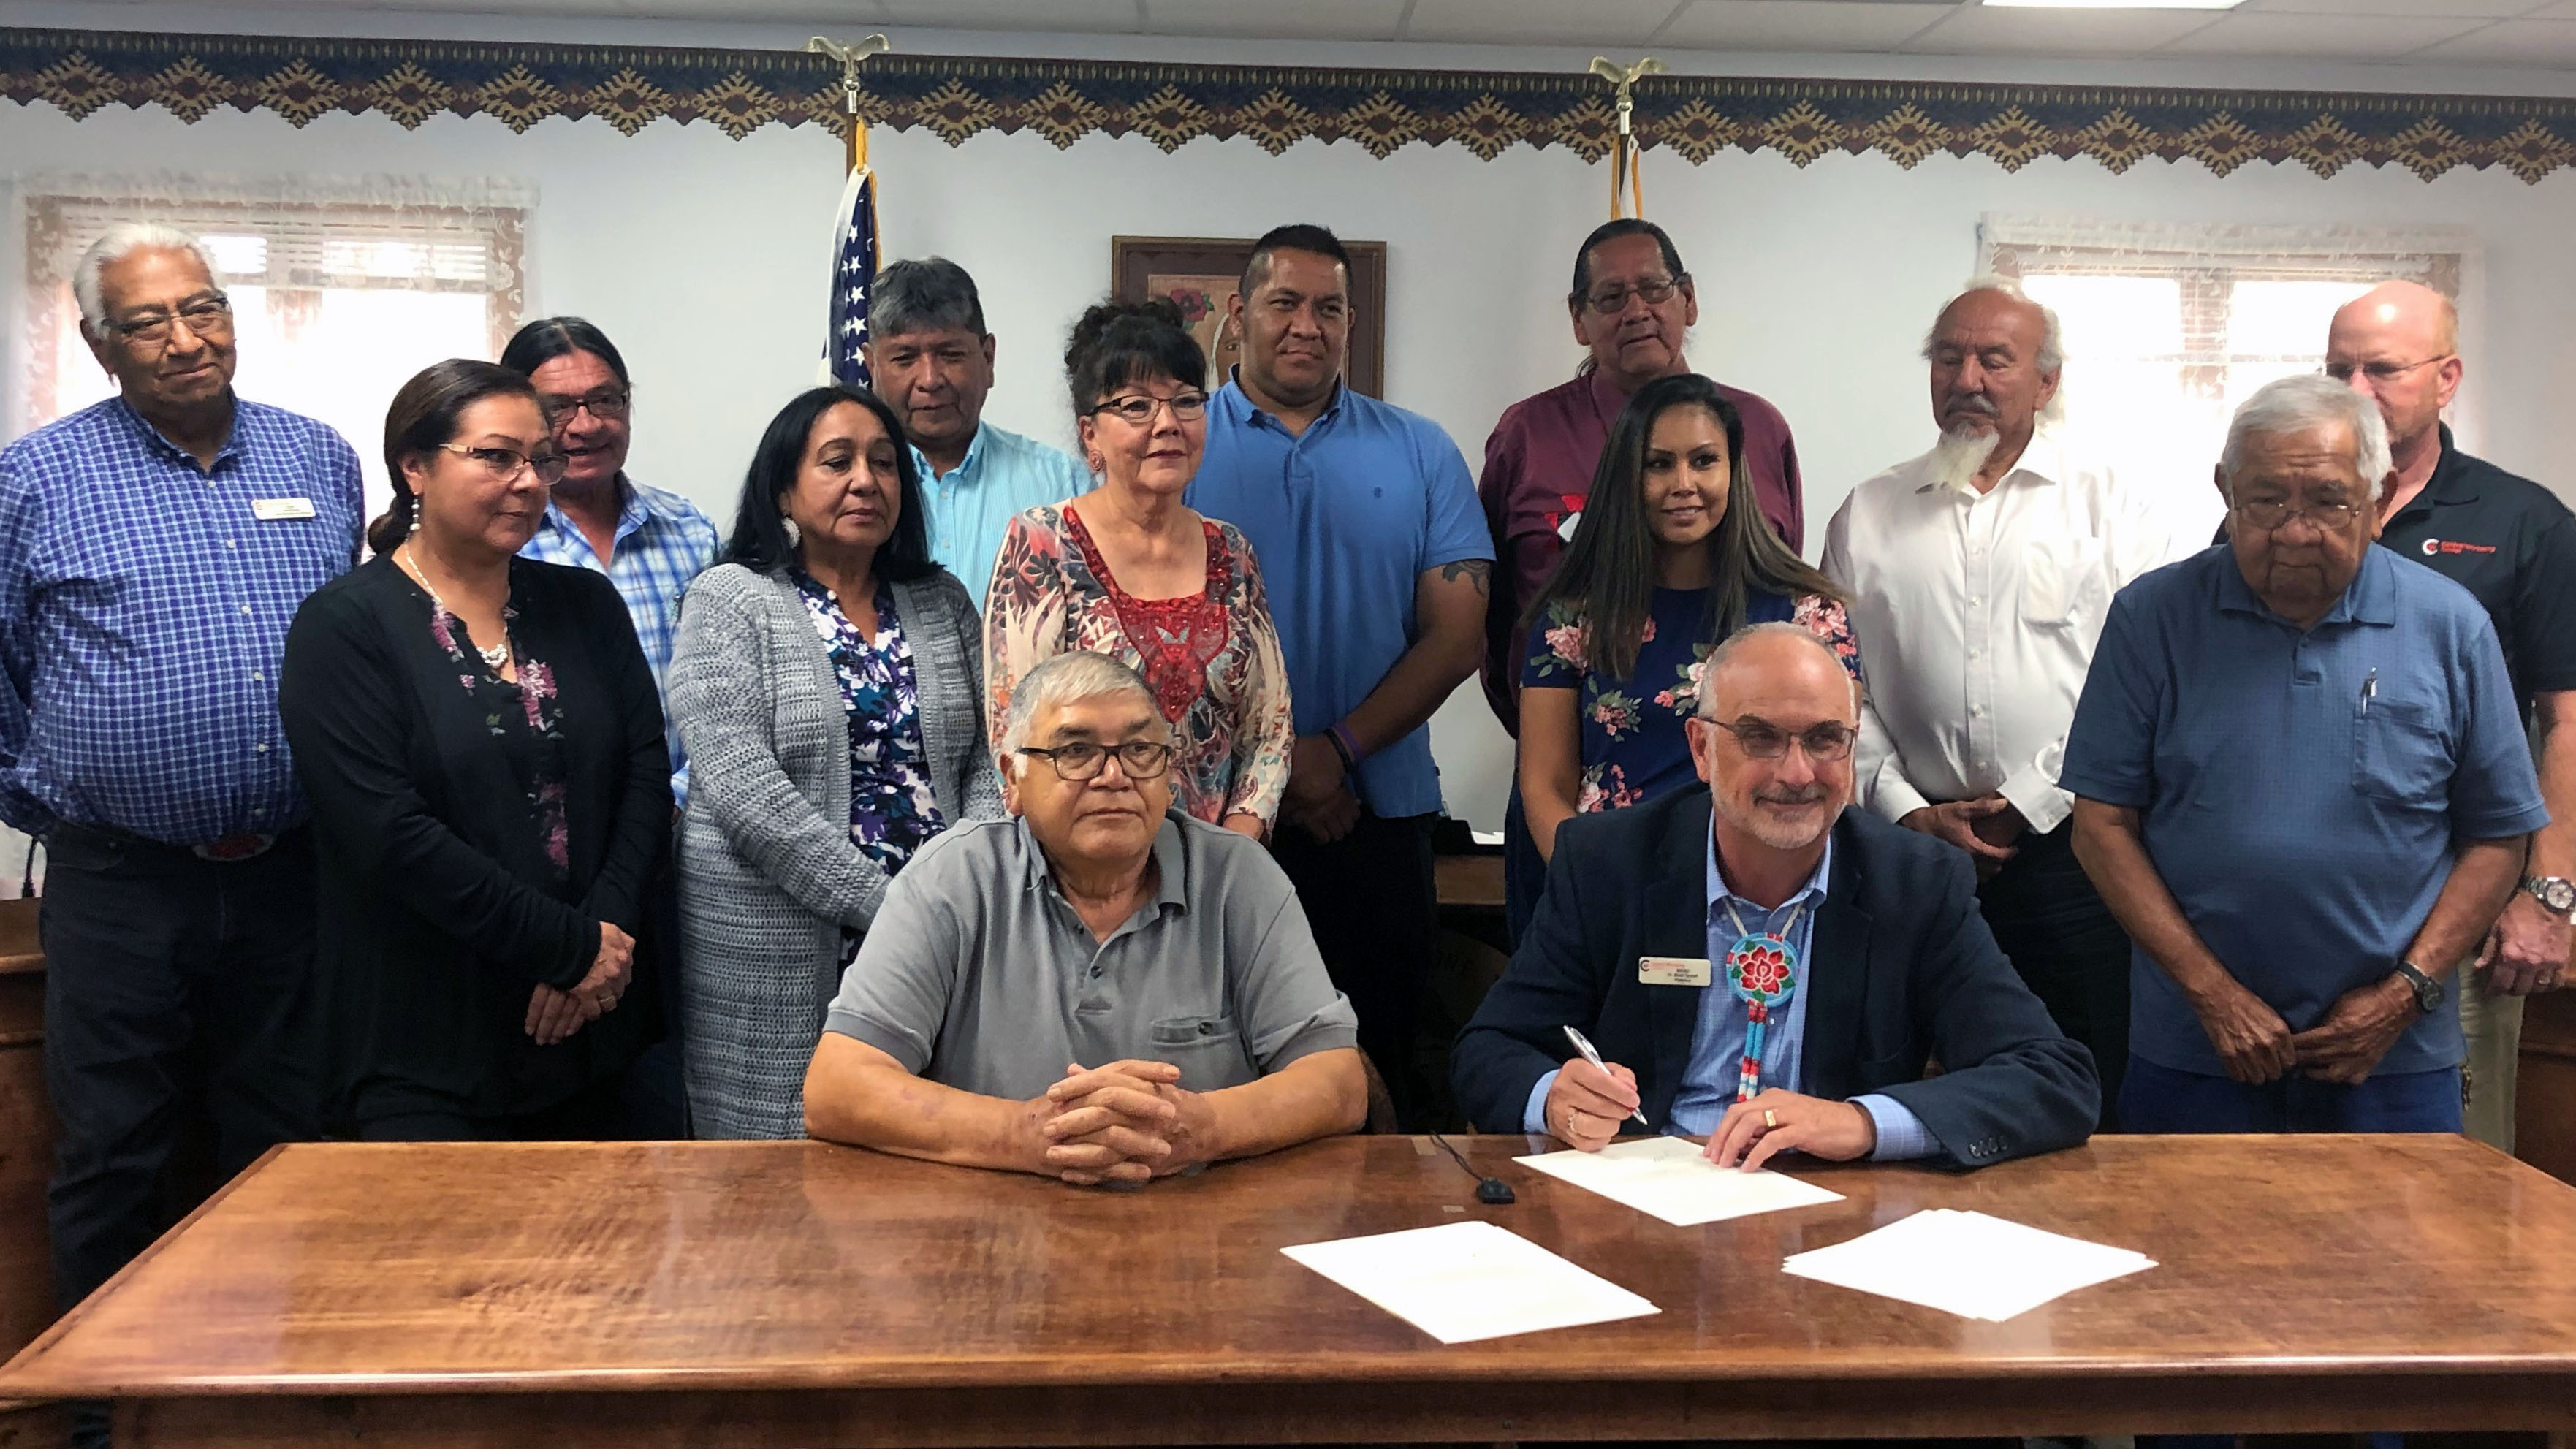 Eastern Shoshone Tribal Council members and Dr. Brad Tyndall signing MOU at tribal council chambers.